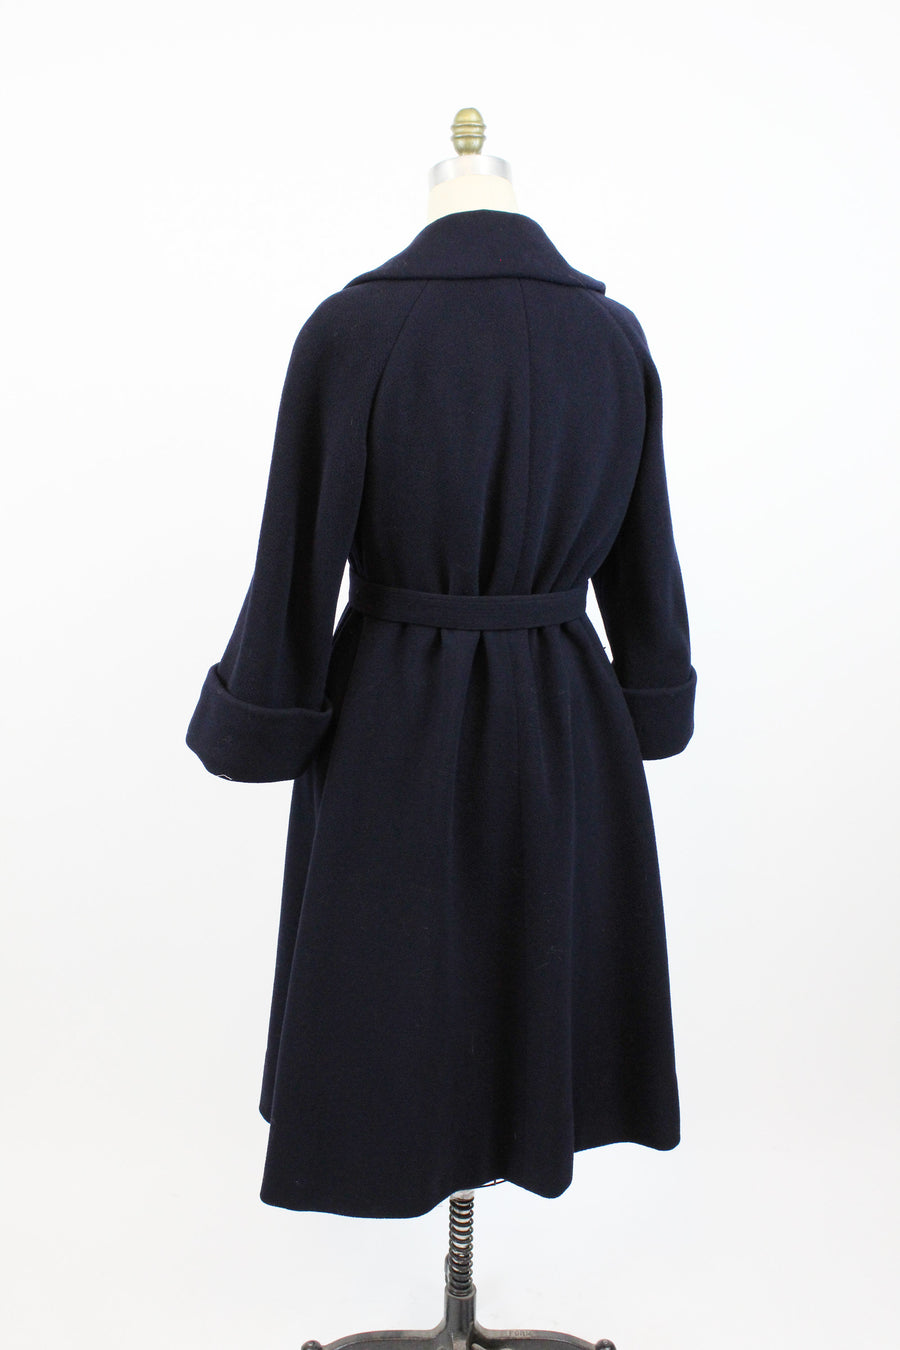 1950s TEAL TRAINA navy wool trenchcoat large | new in